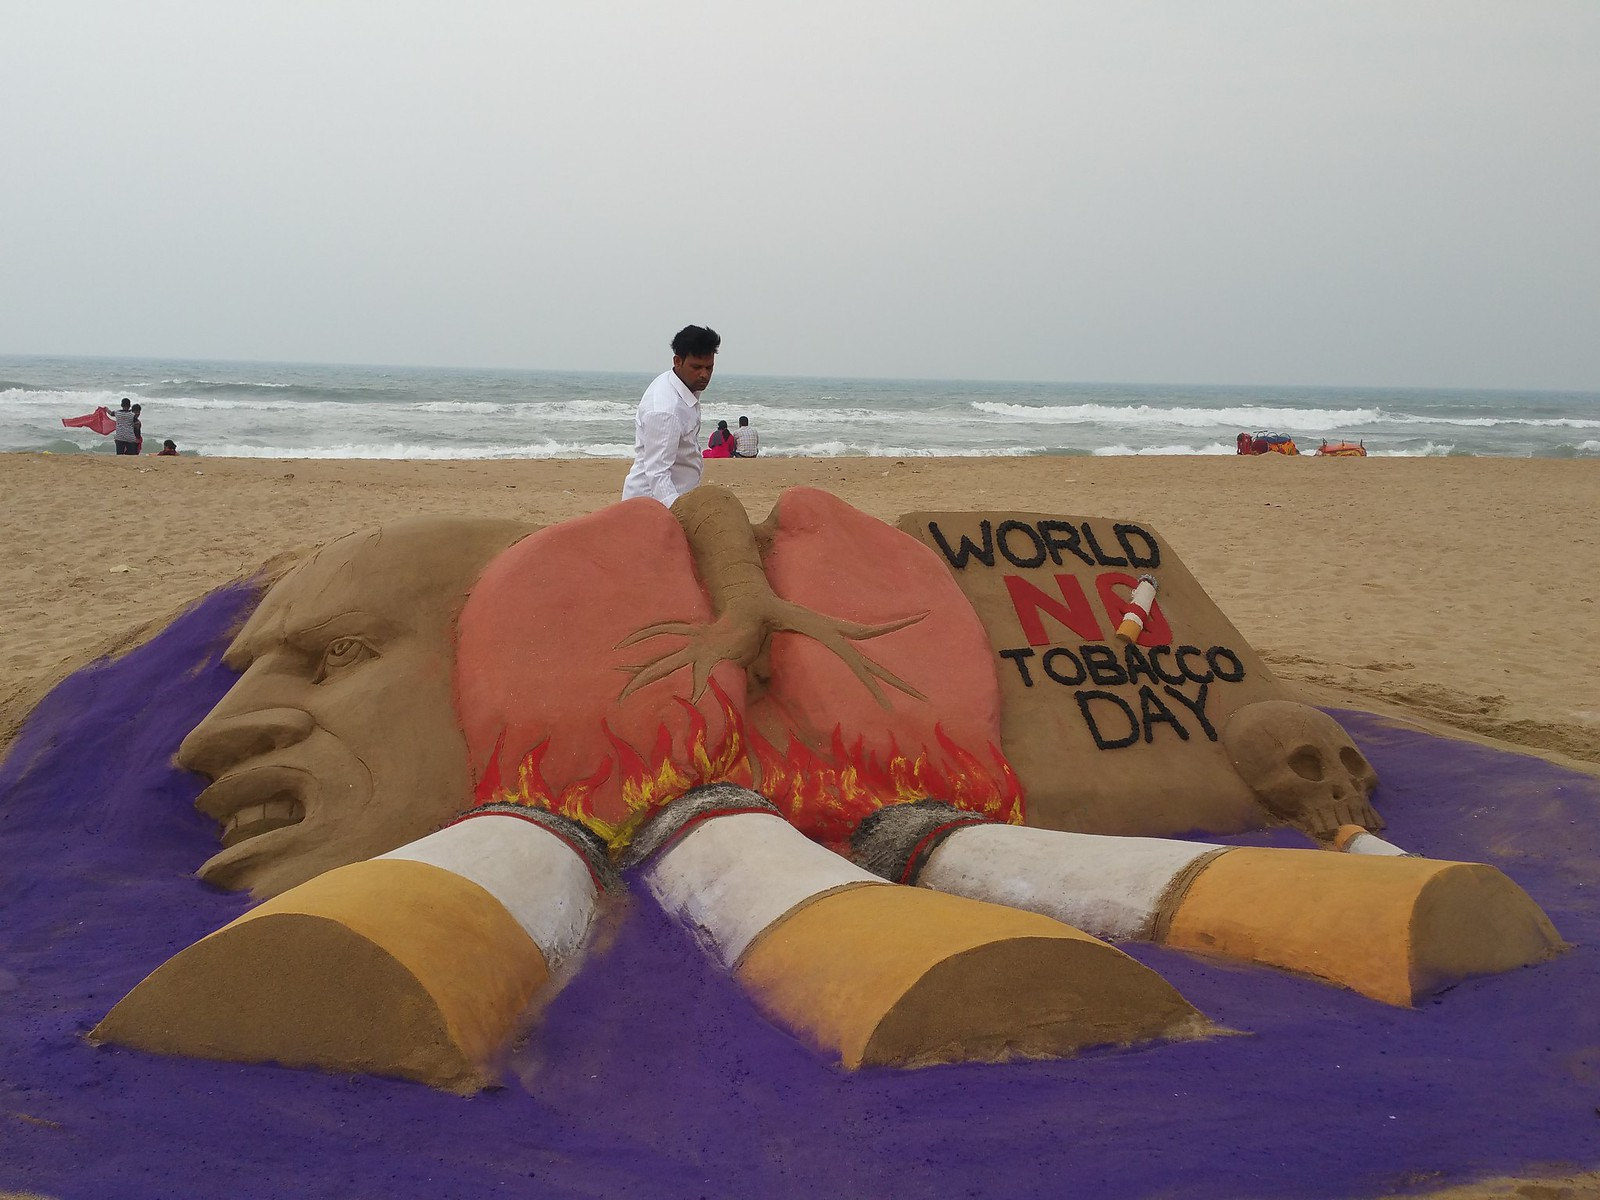 World No Tobacco Day Sand Art at Puri Beach